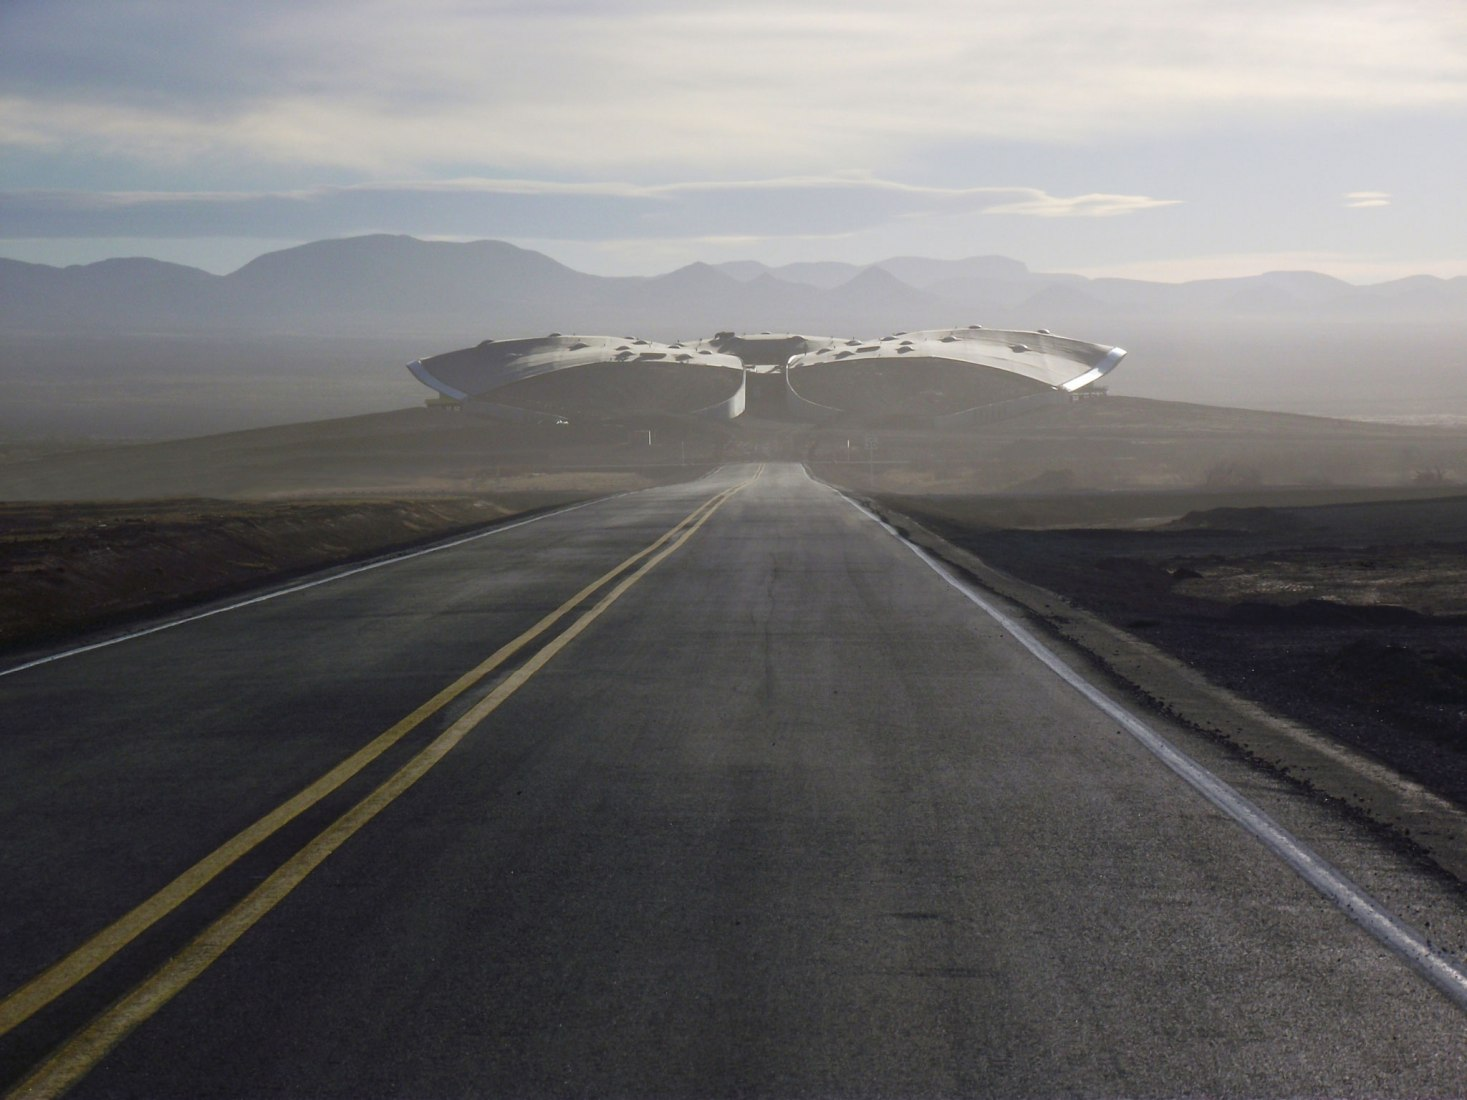 Road leading up to Spaceport America, Virgin Galactic's Gateway to Space. Image courtesy of VirginGalactic.